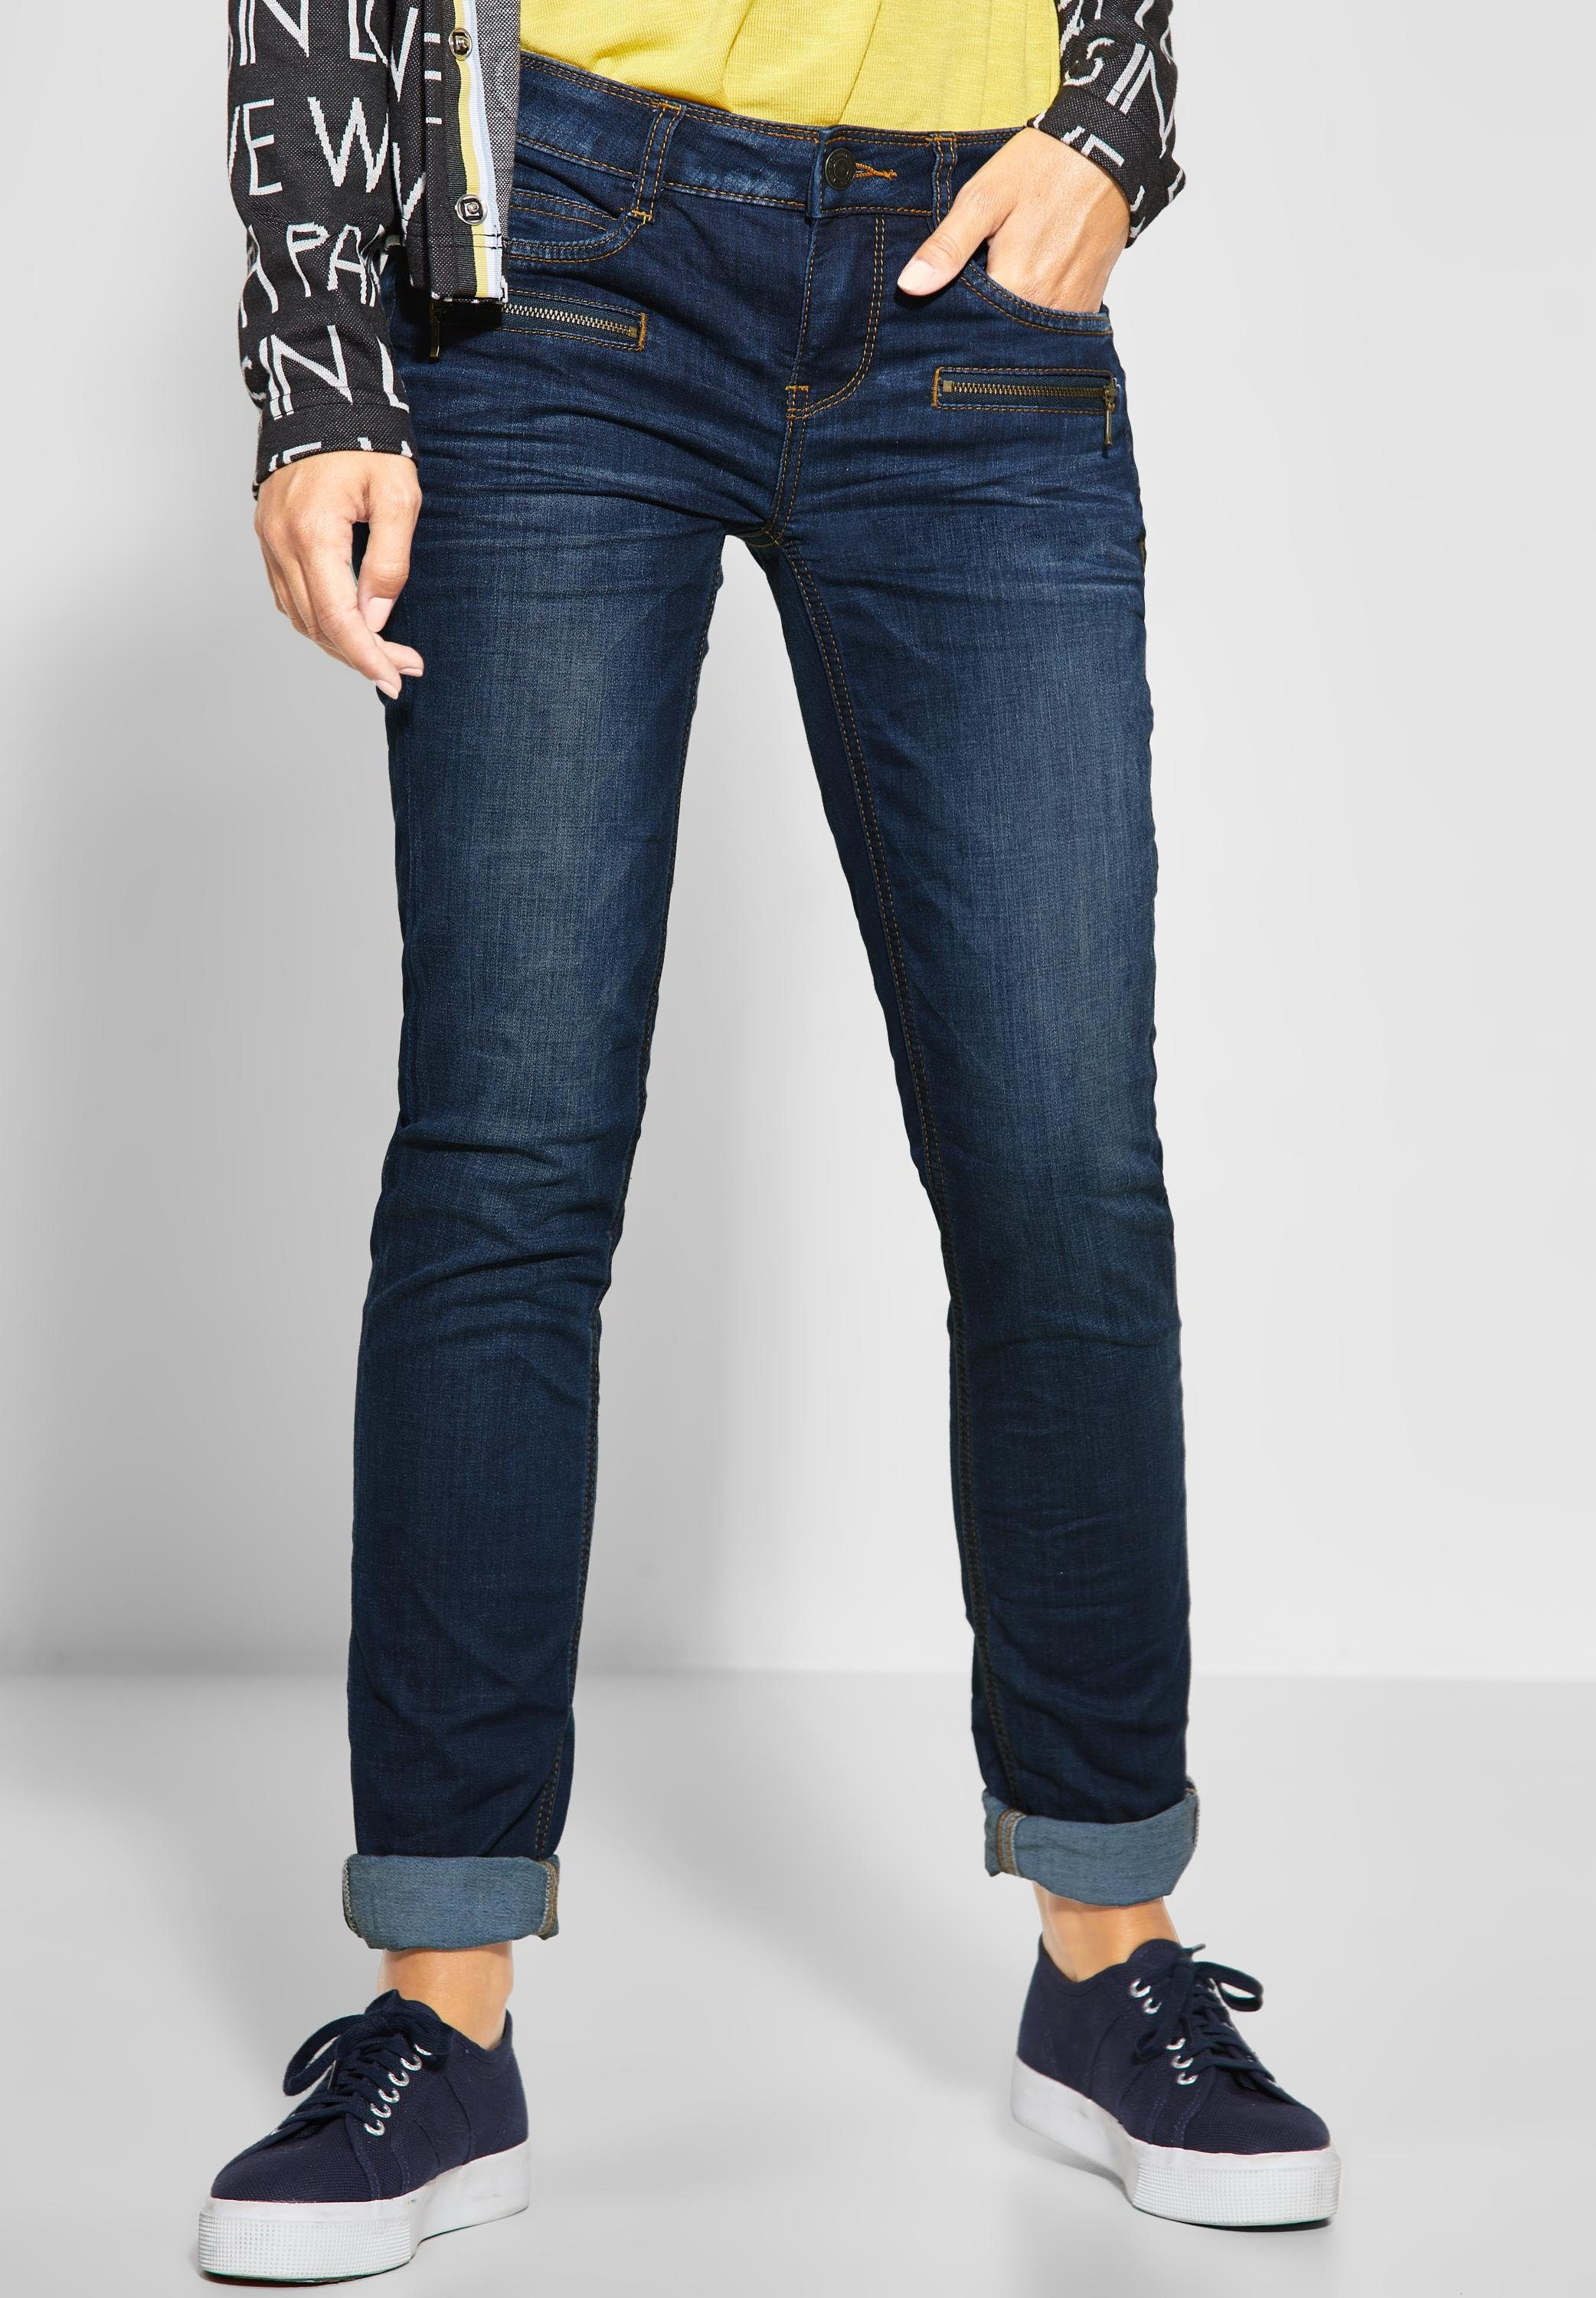 STREET ONE Comfort fit Jeans mit Crinkles, Casual Fit Denim online kaufen | OTTO